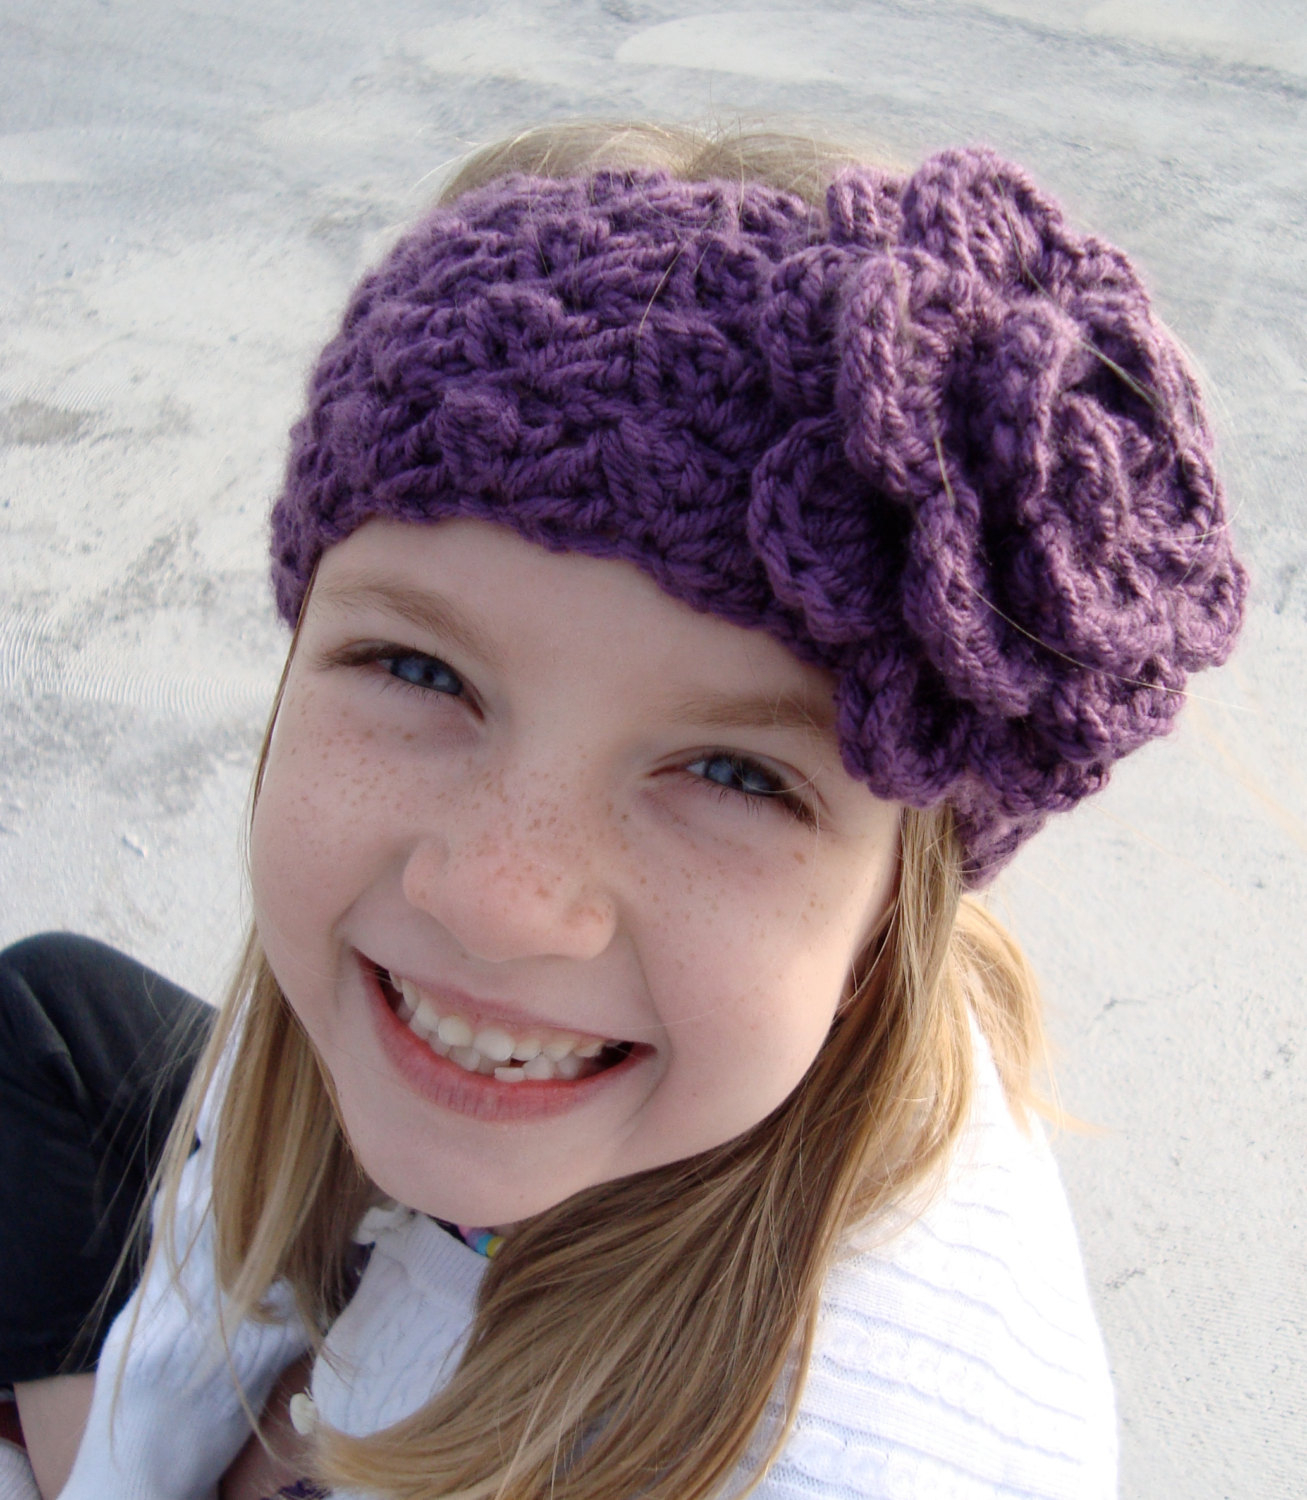 Knit Headband Pattern With Flower Girls Crochet Headbands For All Crochet And Knitting Patterns 2019